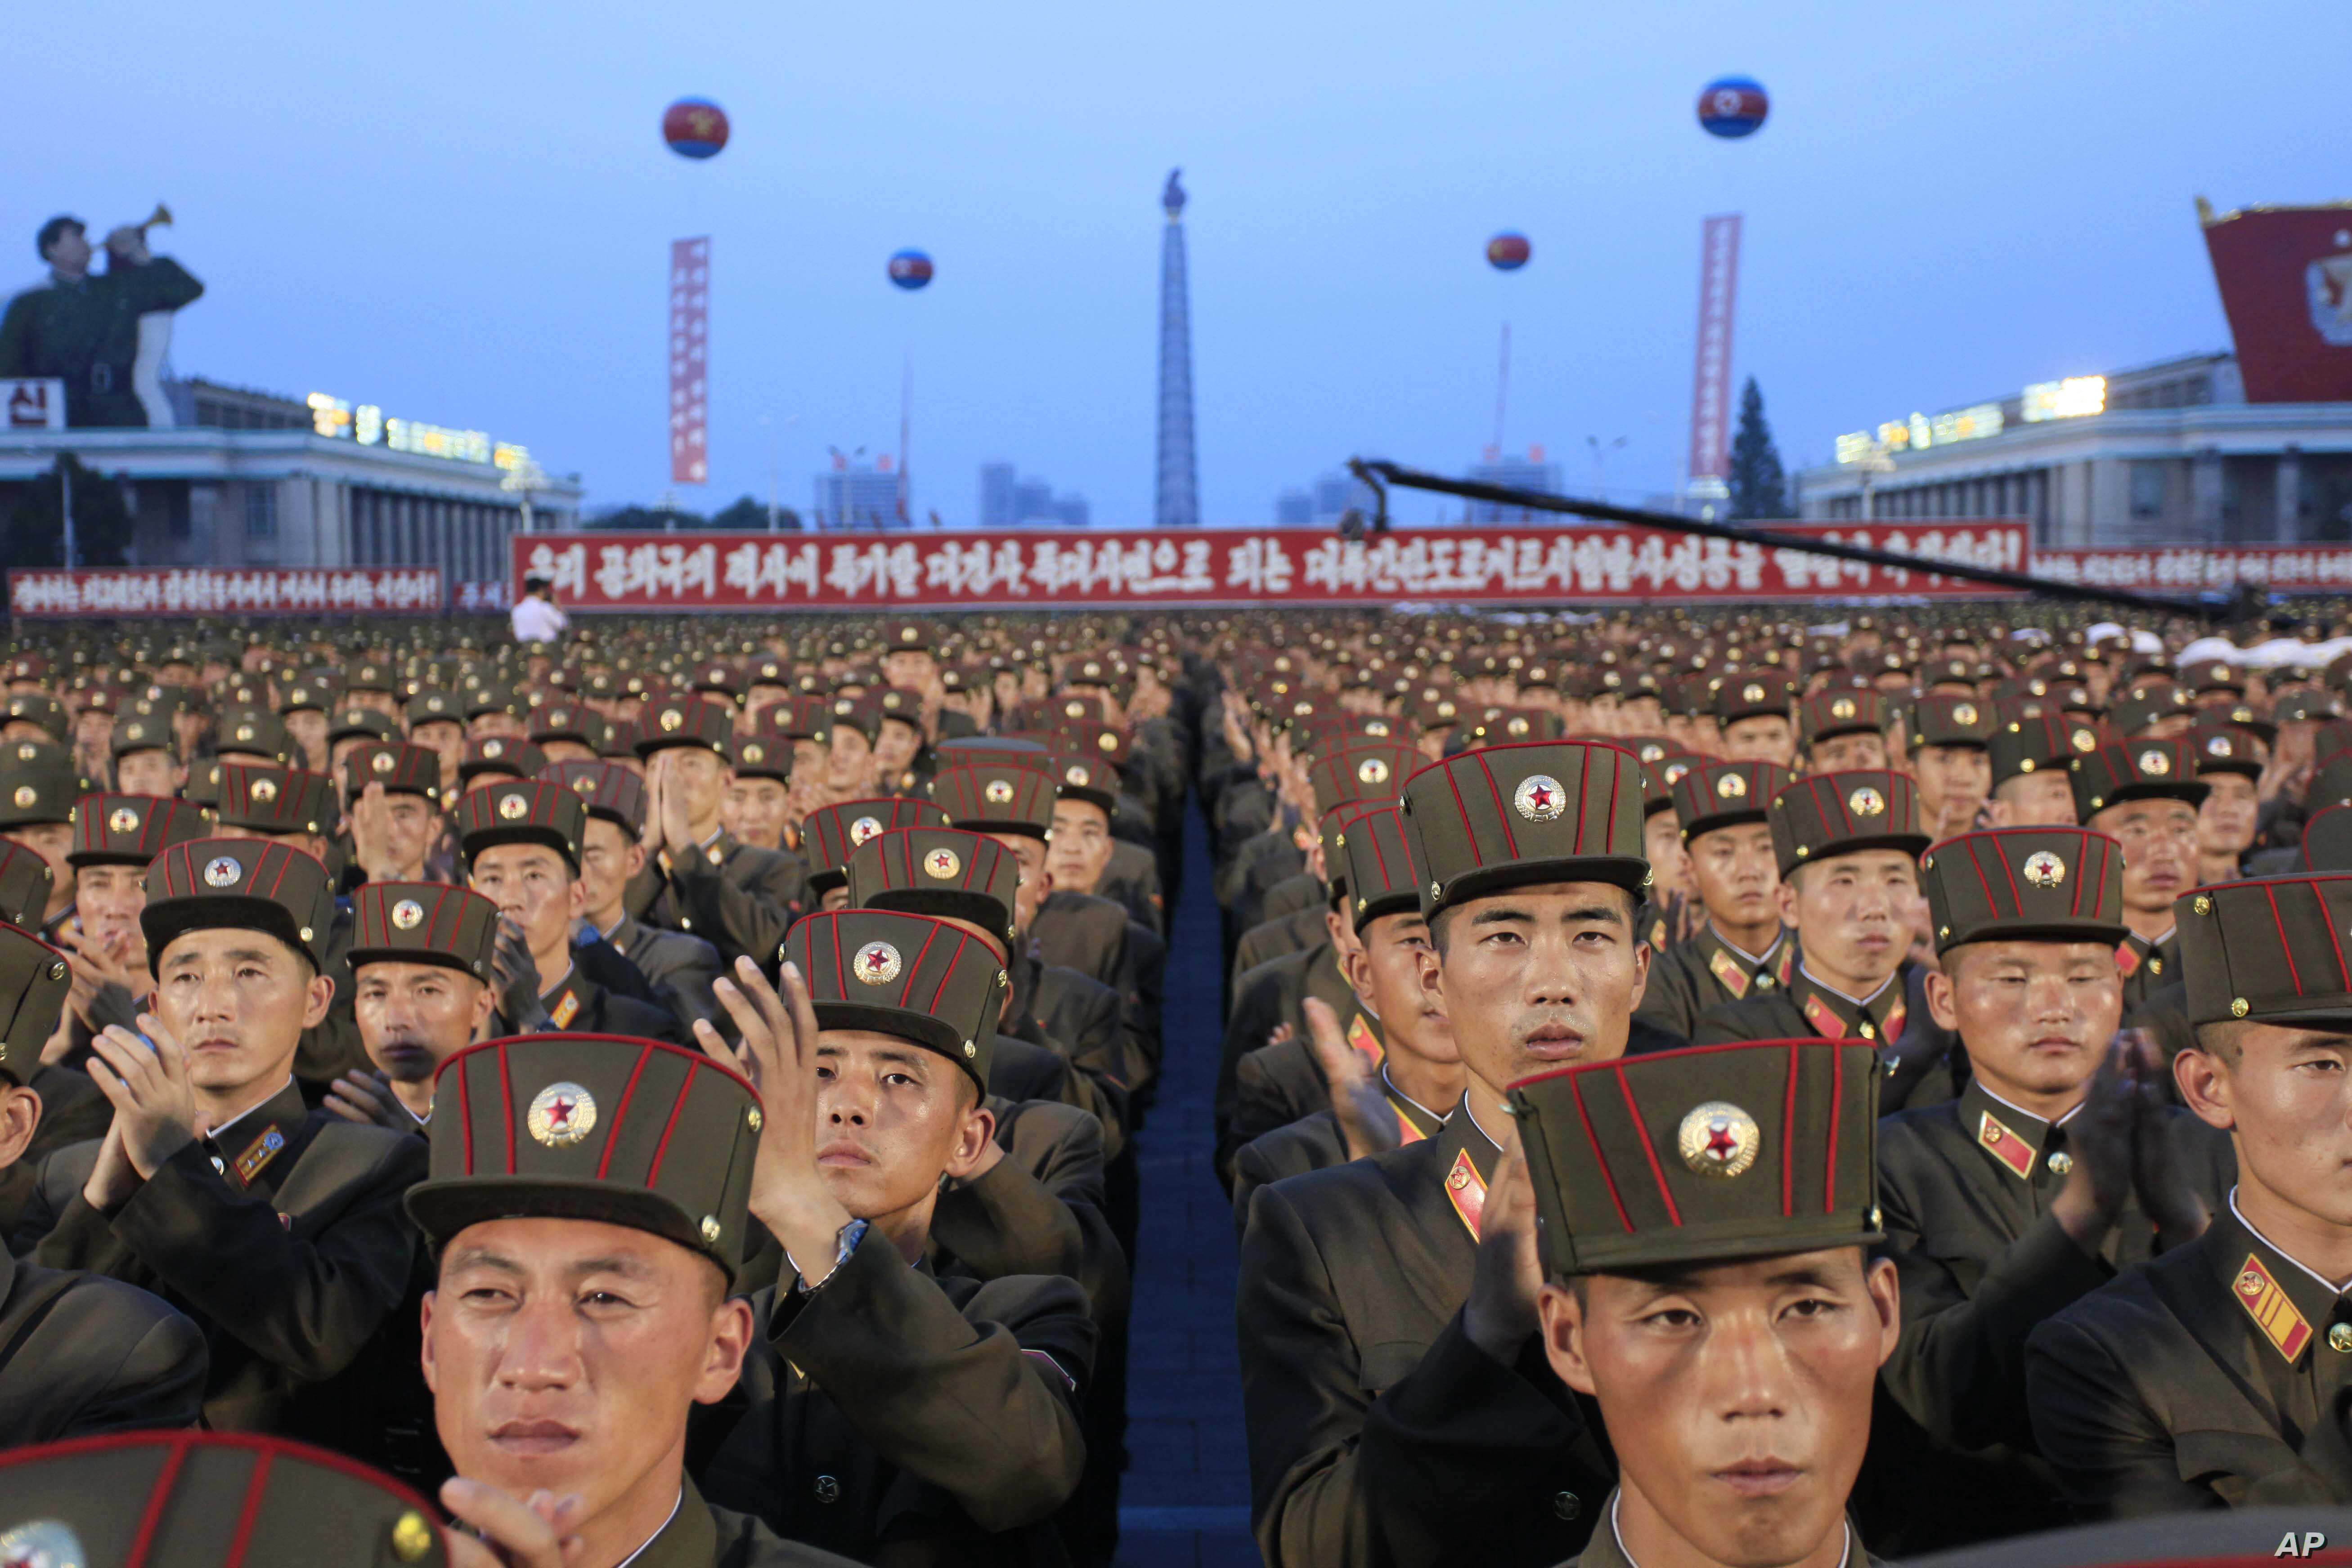 Soldiers gather in Kim Il Sung Square in Pyongyang, North Korea, July 6, 2017, to celebrate the test launch of North Korea's first intercontinental ballistic missile two days earlier.